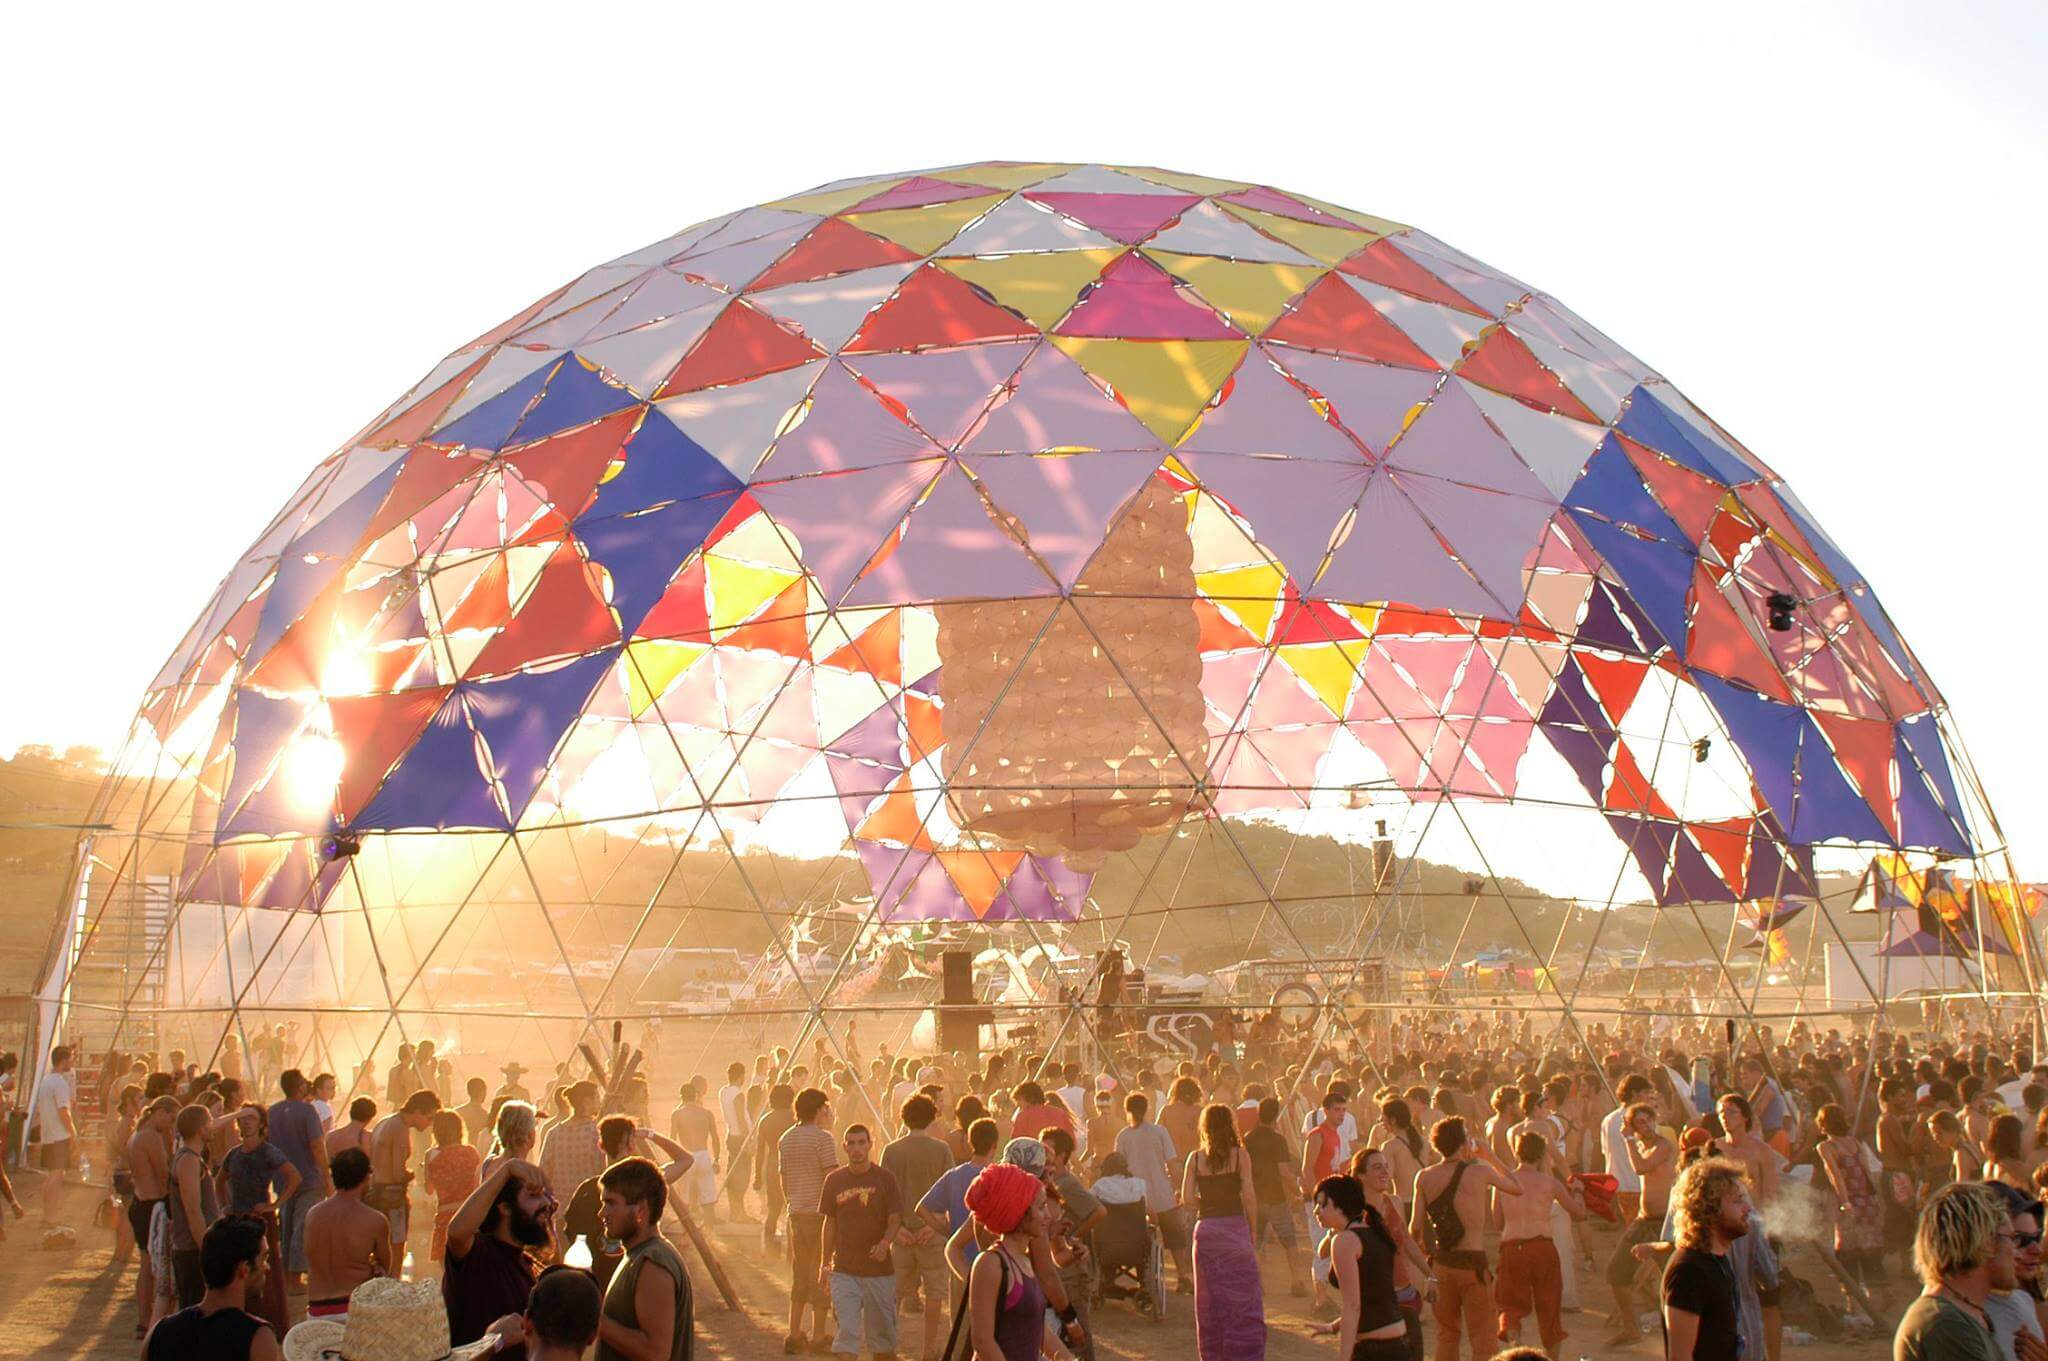 Festivals like Burning Man but different